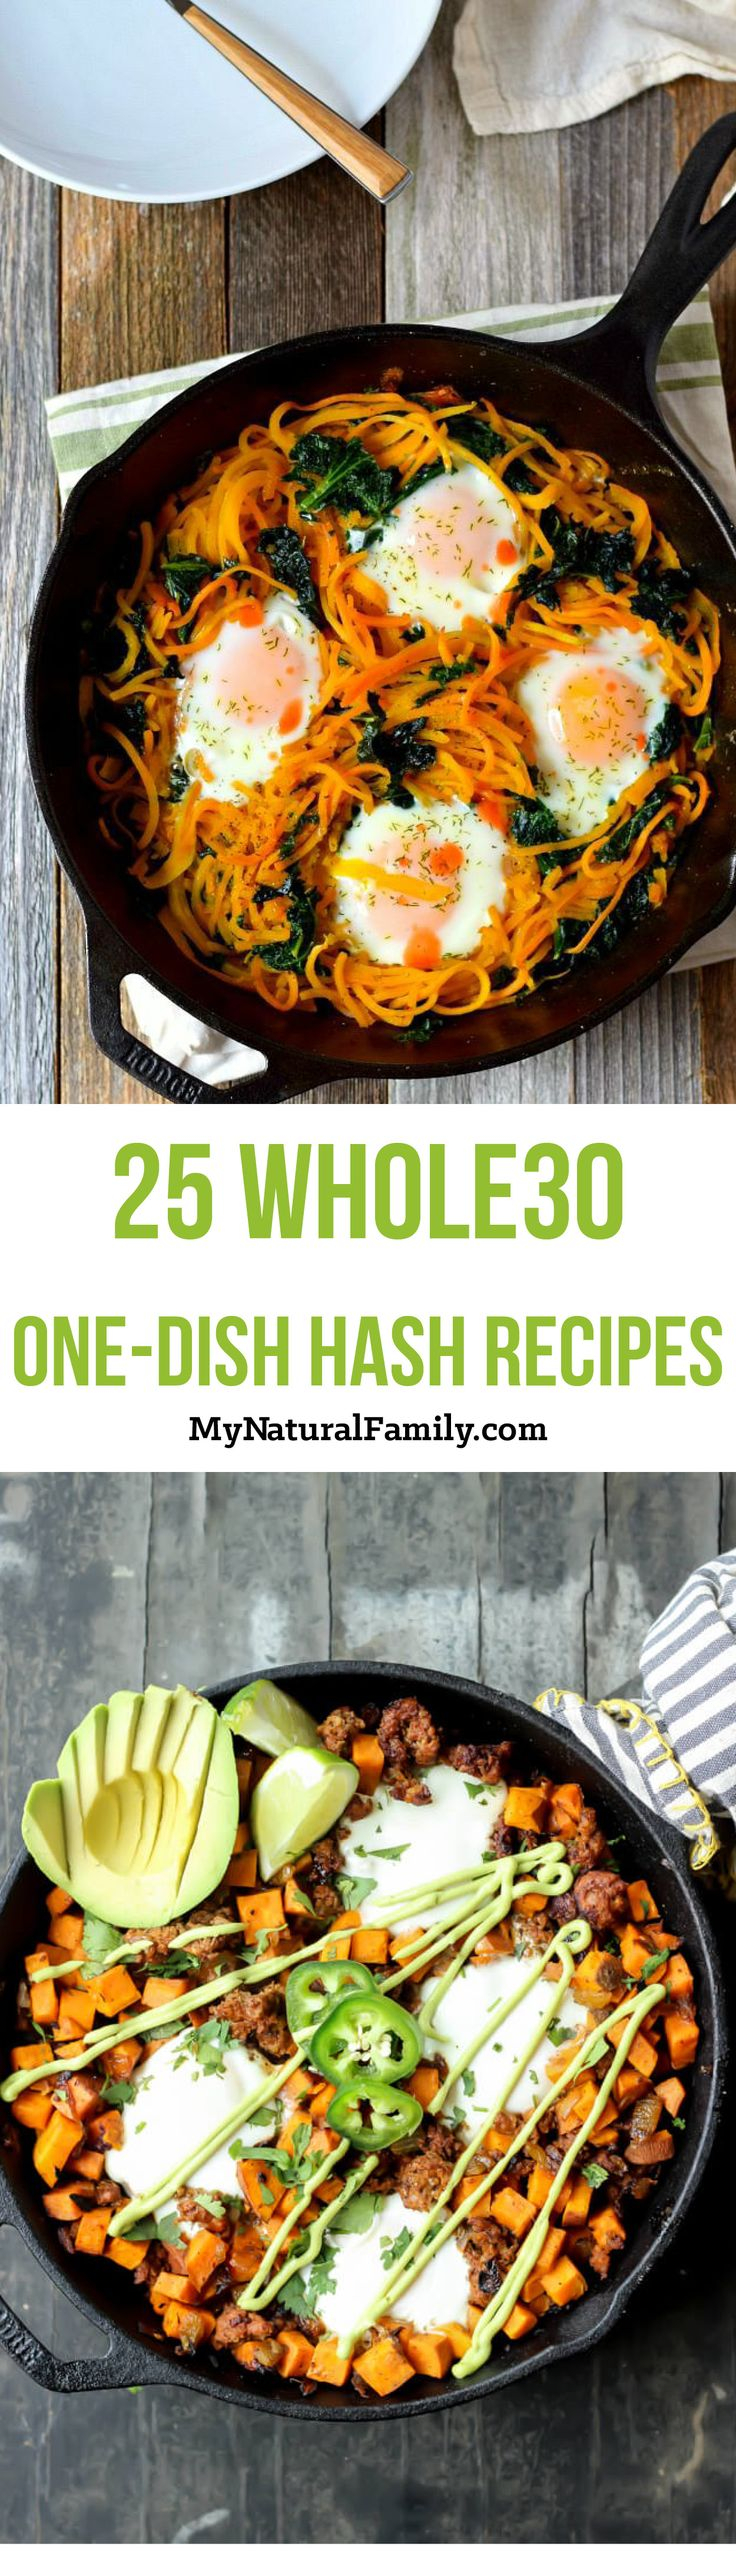 25 Whole30 Breakfast One Dish Hash Recipes